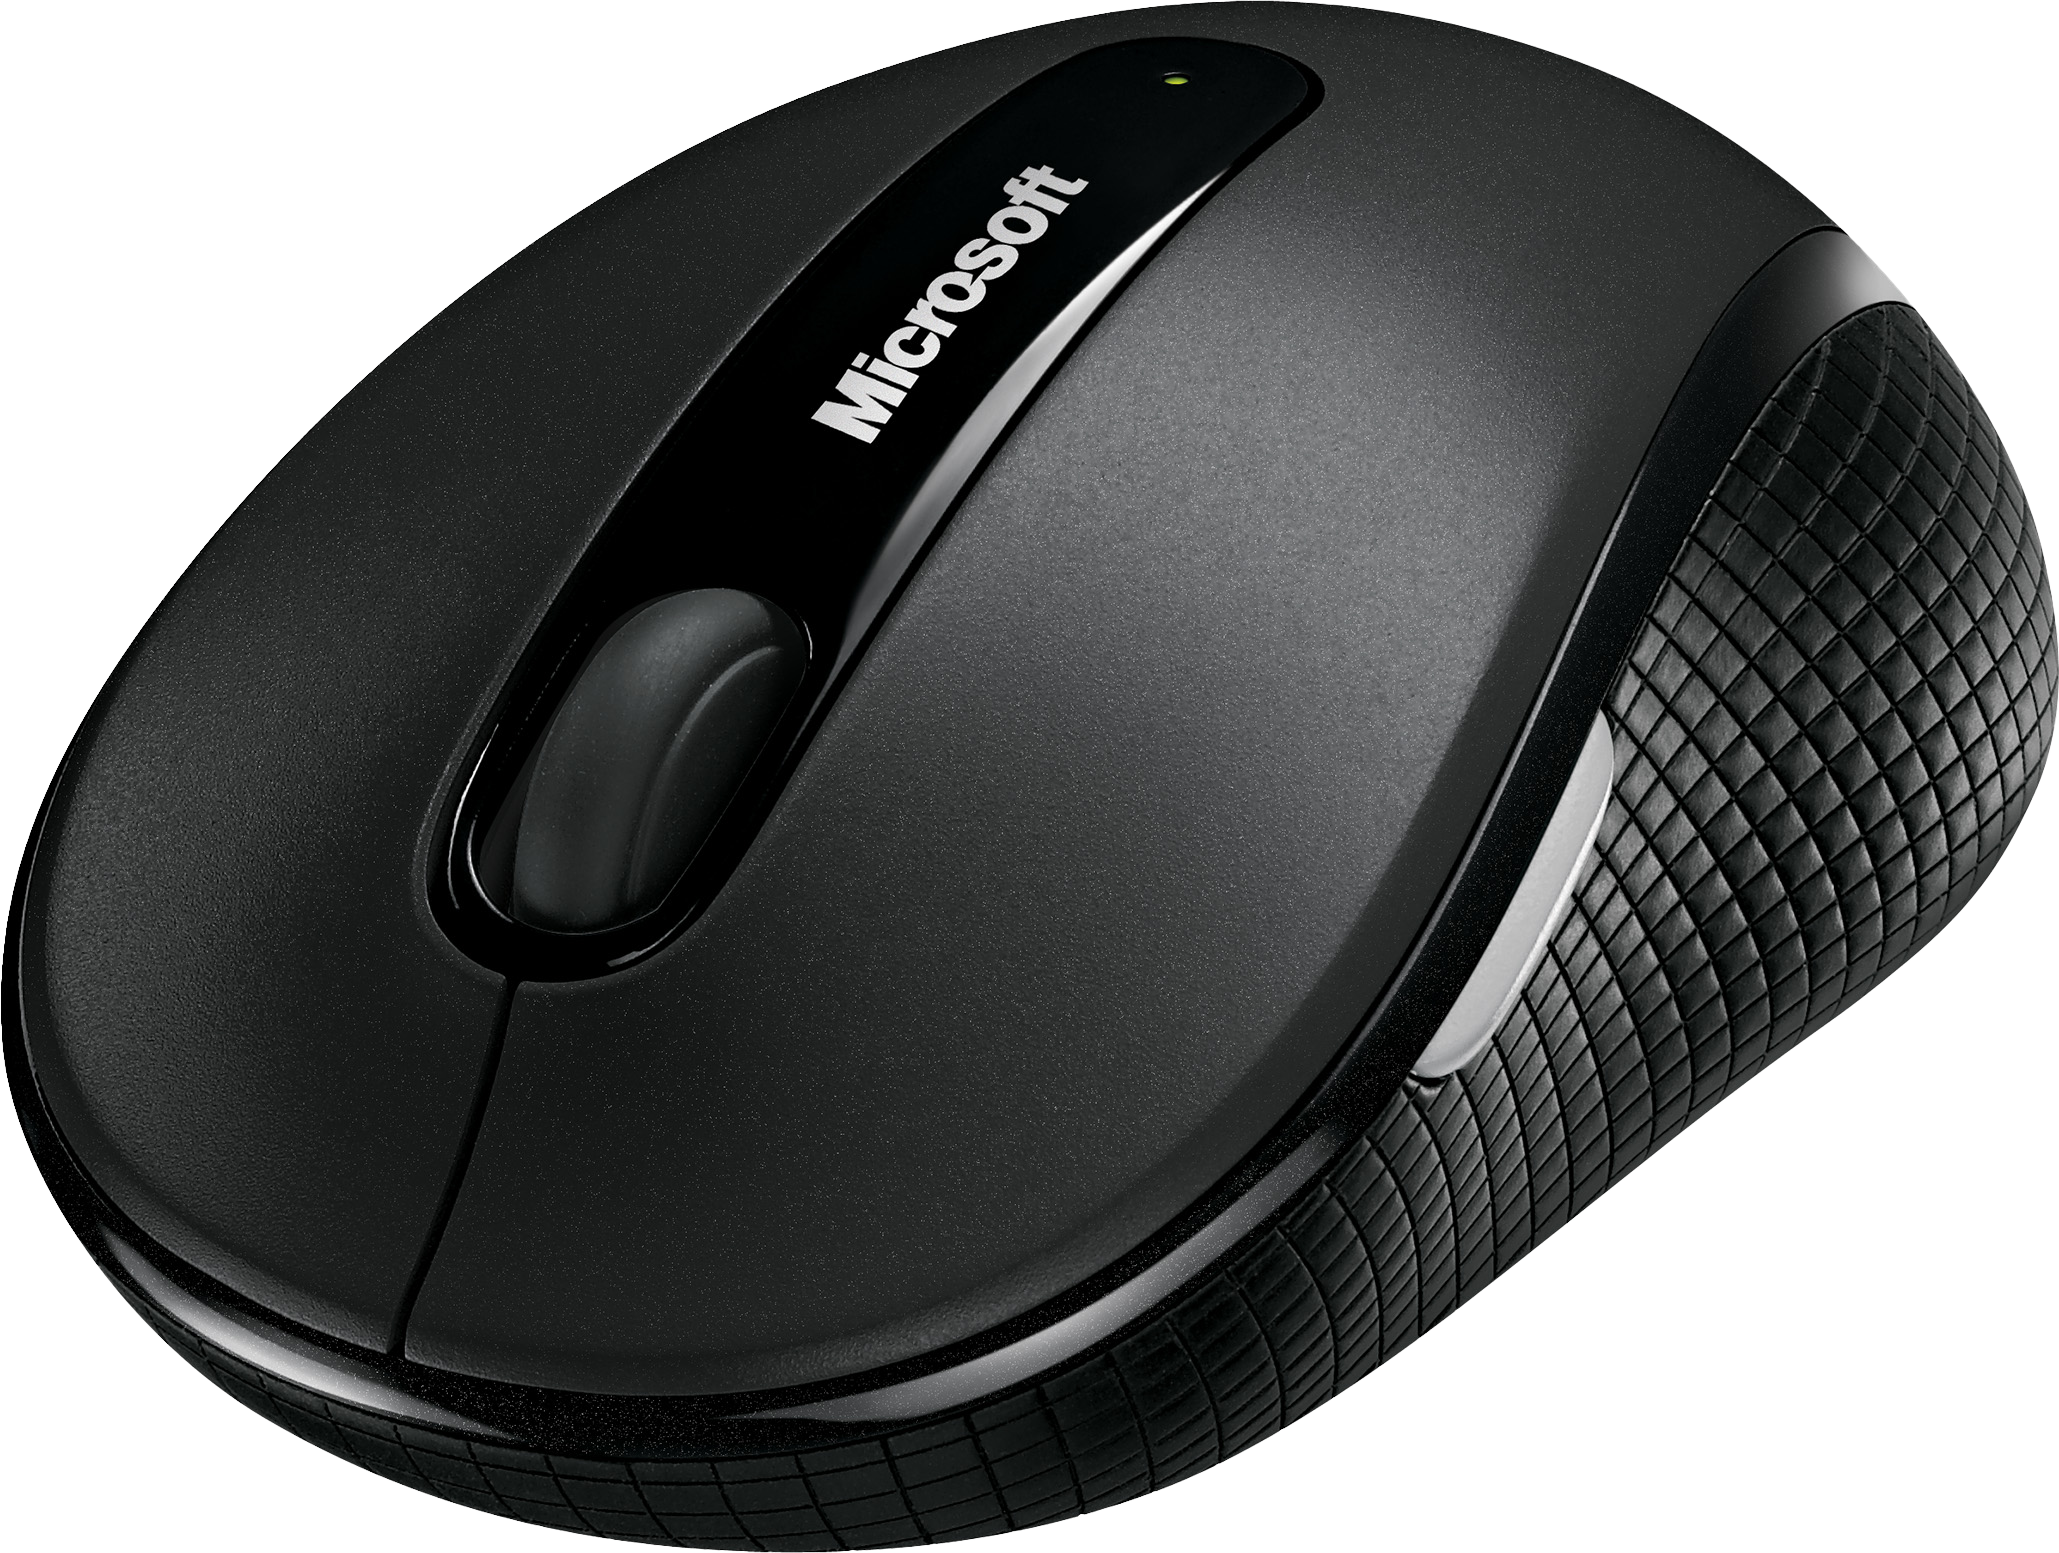 Microsoft Wireless Mobile Mouse 4000 (antraciet)